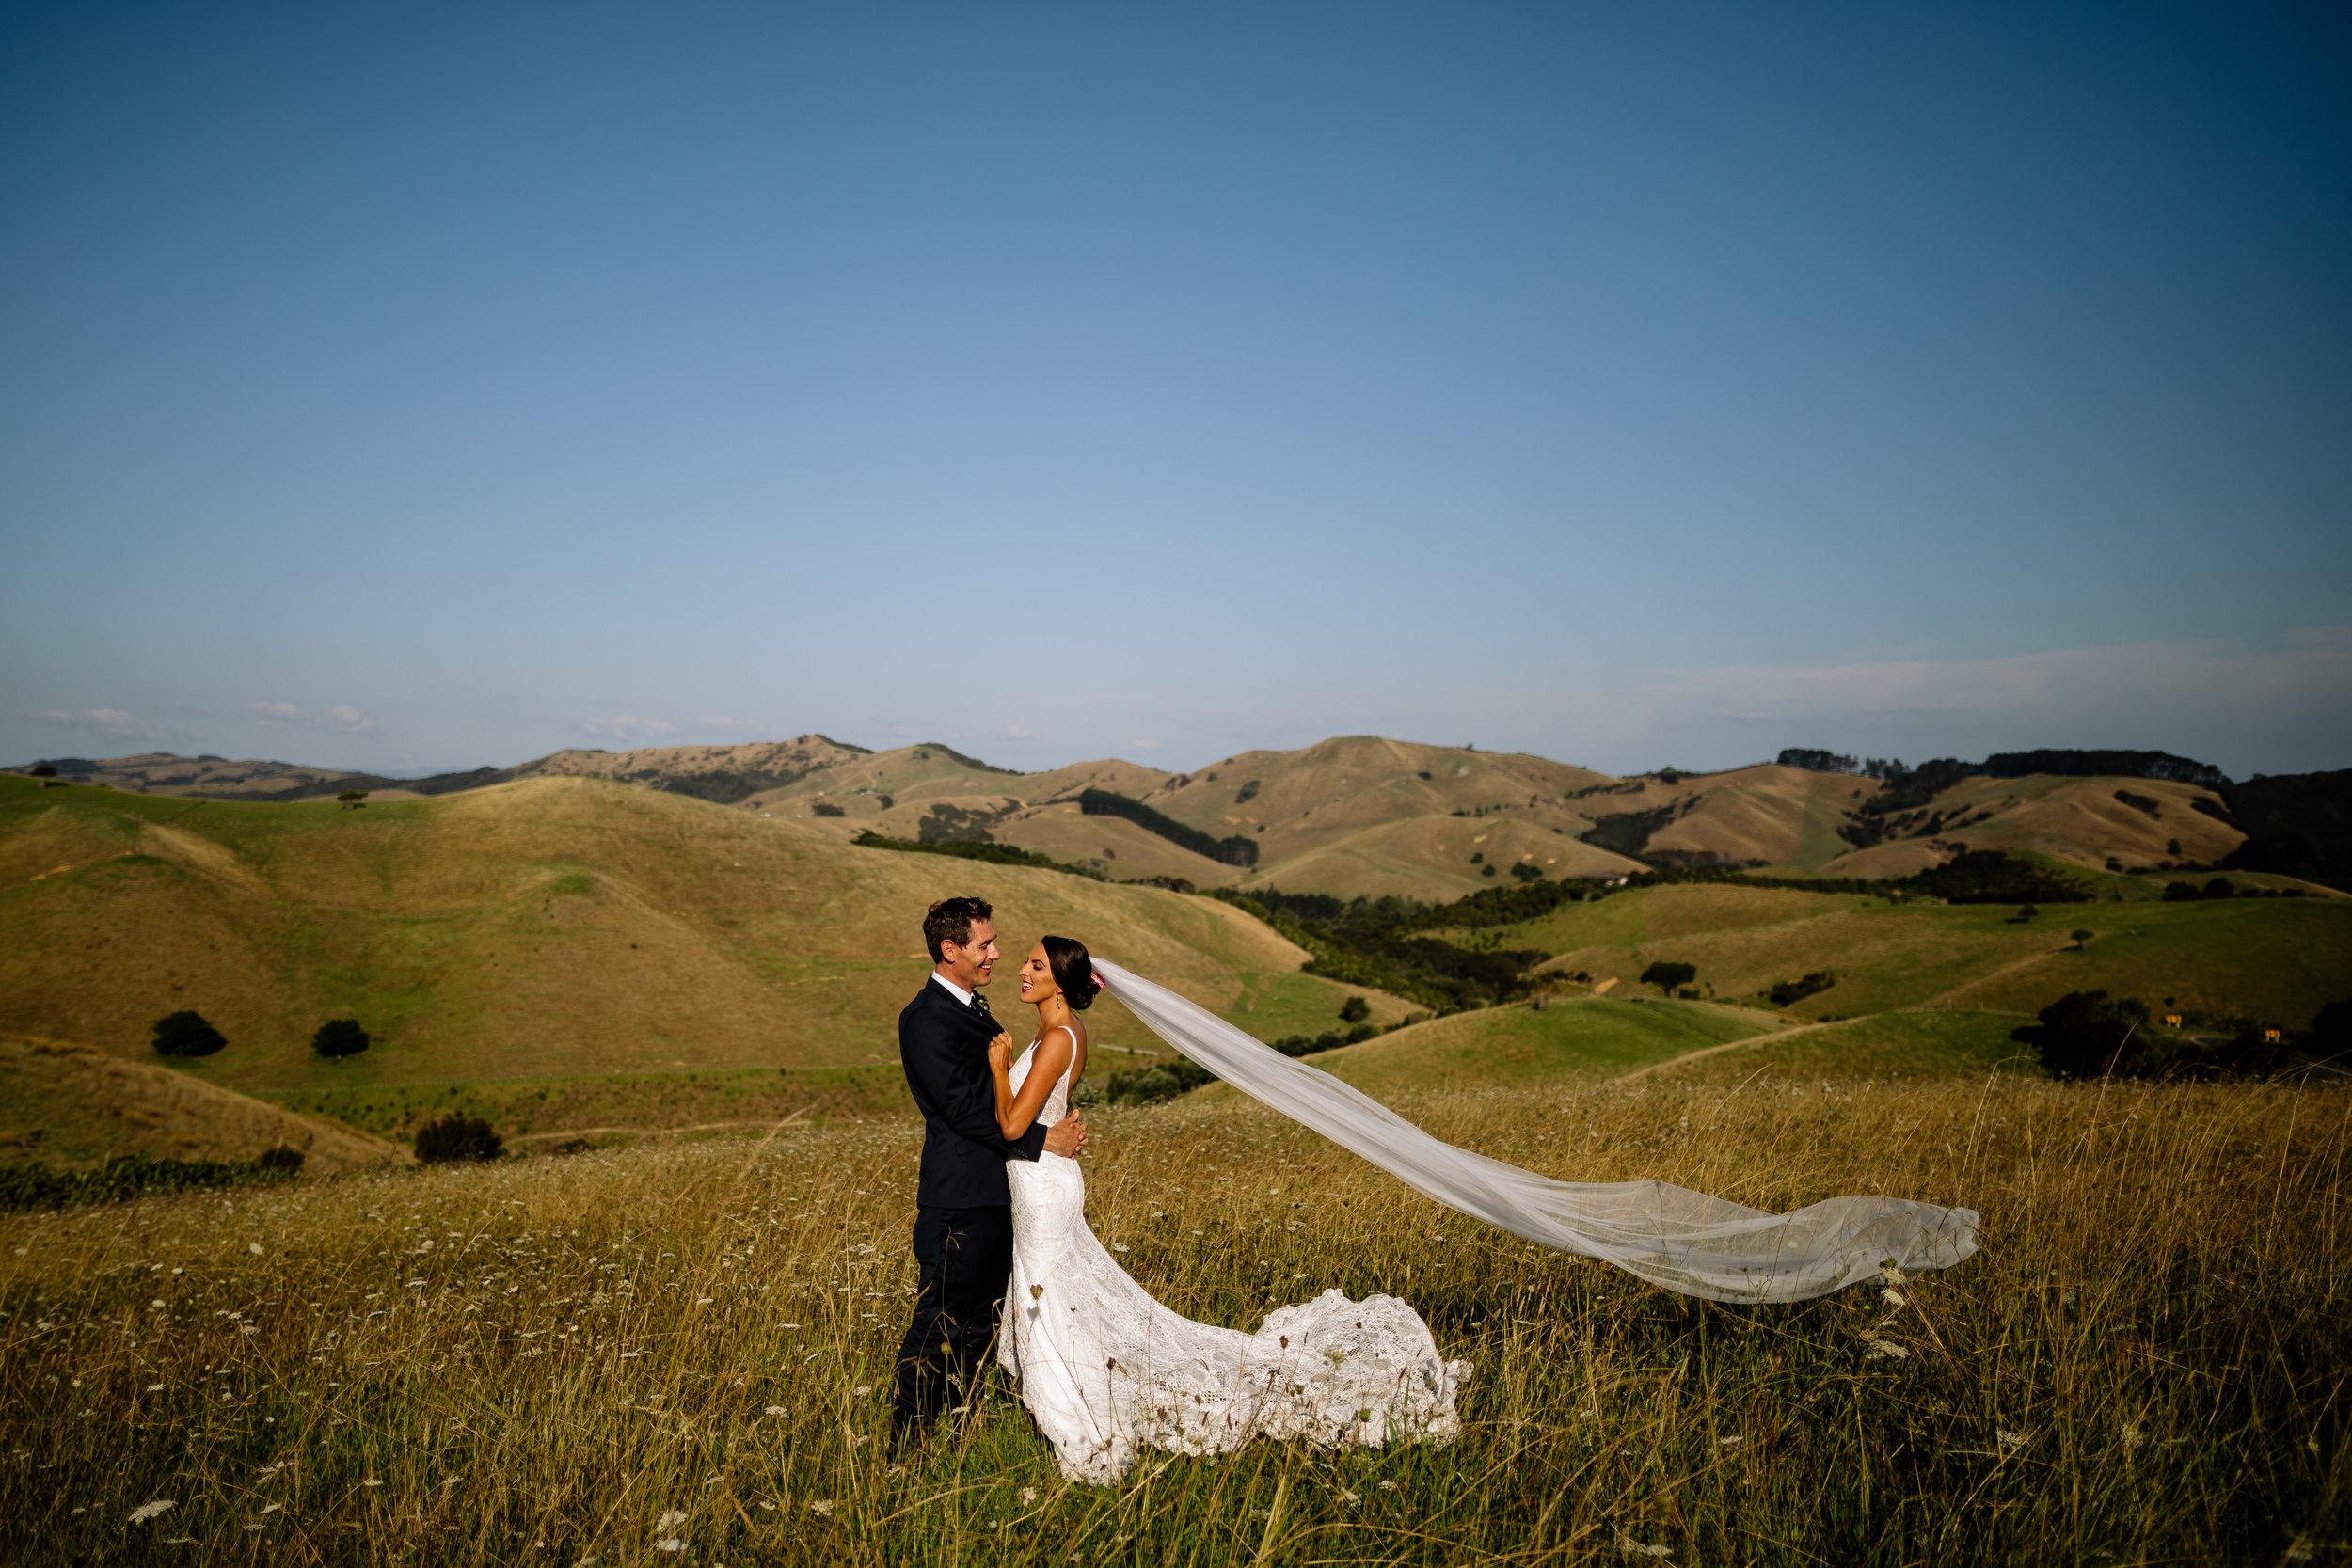 826_Alex-Tommo-wedding-the-official-photographers_AOP_1403.jpg